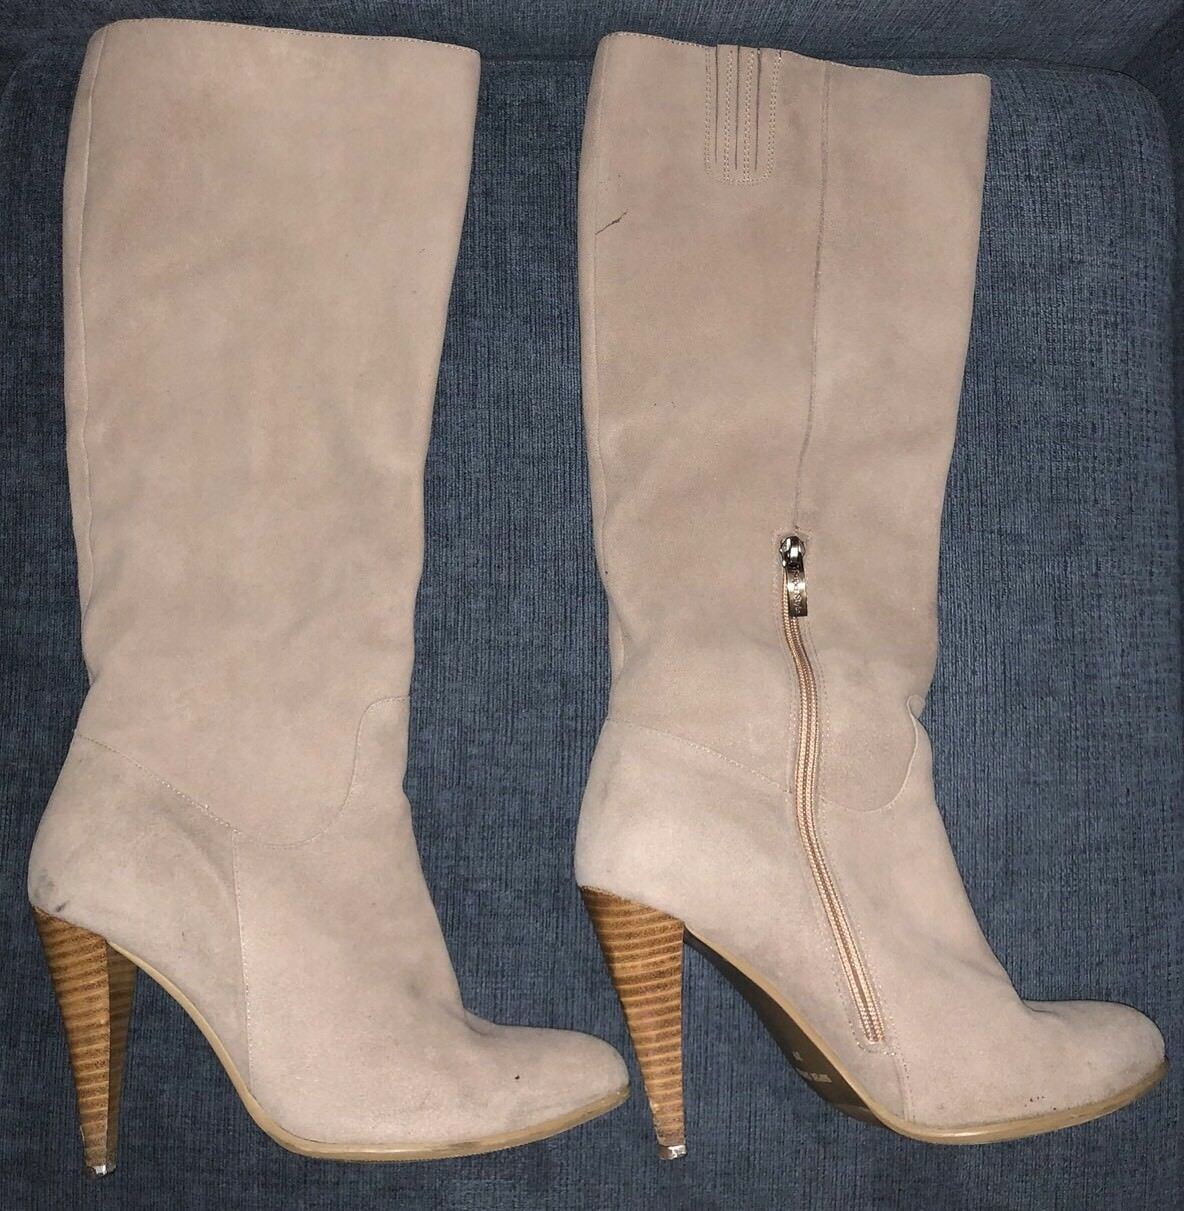 Genuine Suede Tall Stiefel Winter Fur Lined Sz Sz Sz 8.5 9 Super Style Beige Rosa 1e7847